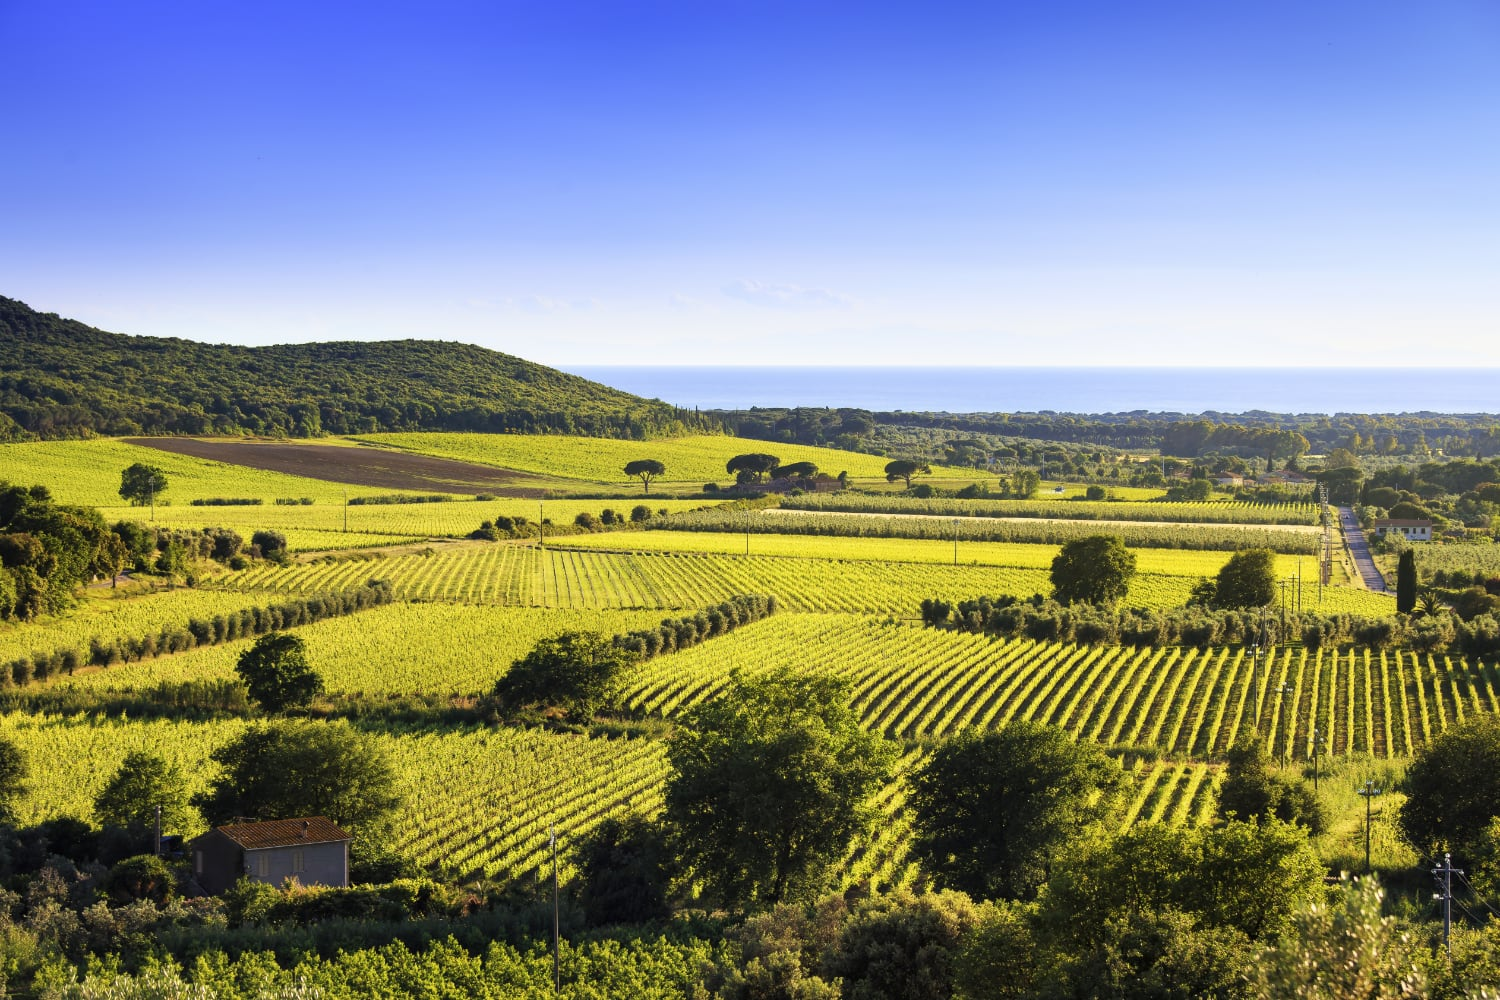 Super Tuscan vineyards overview